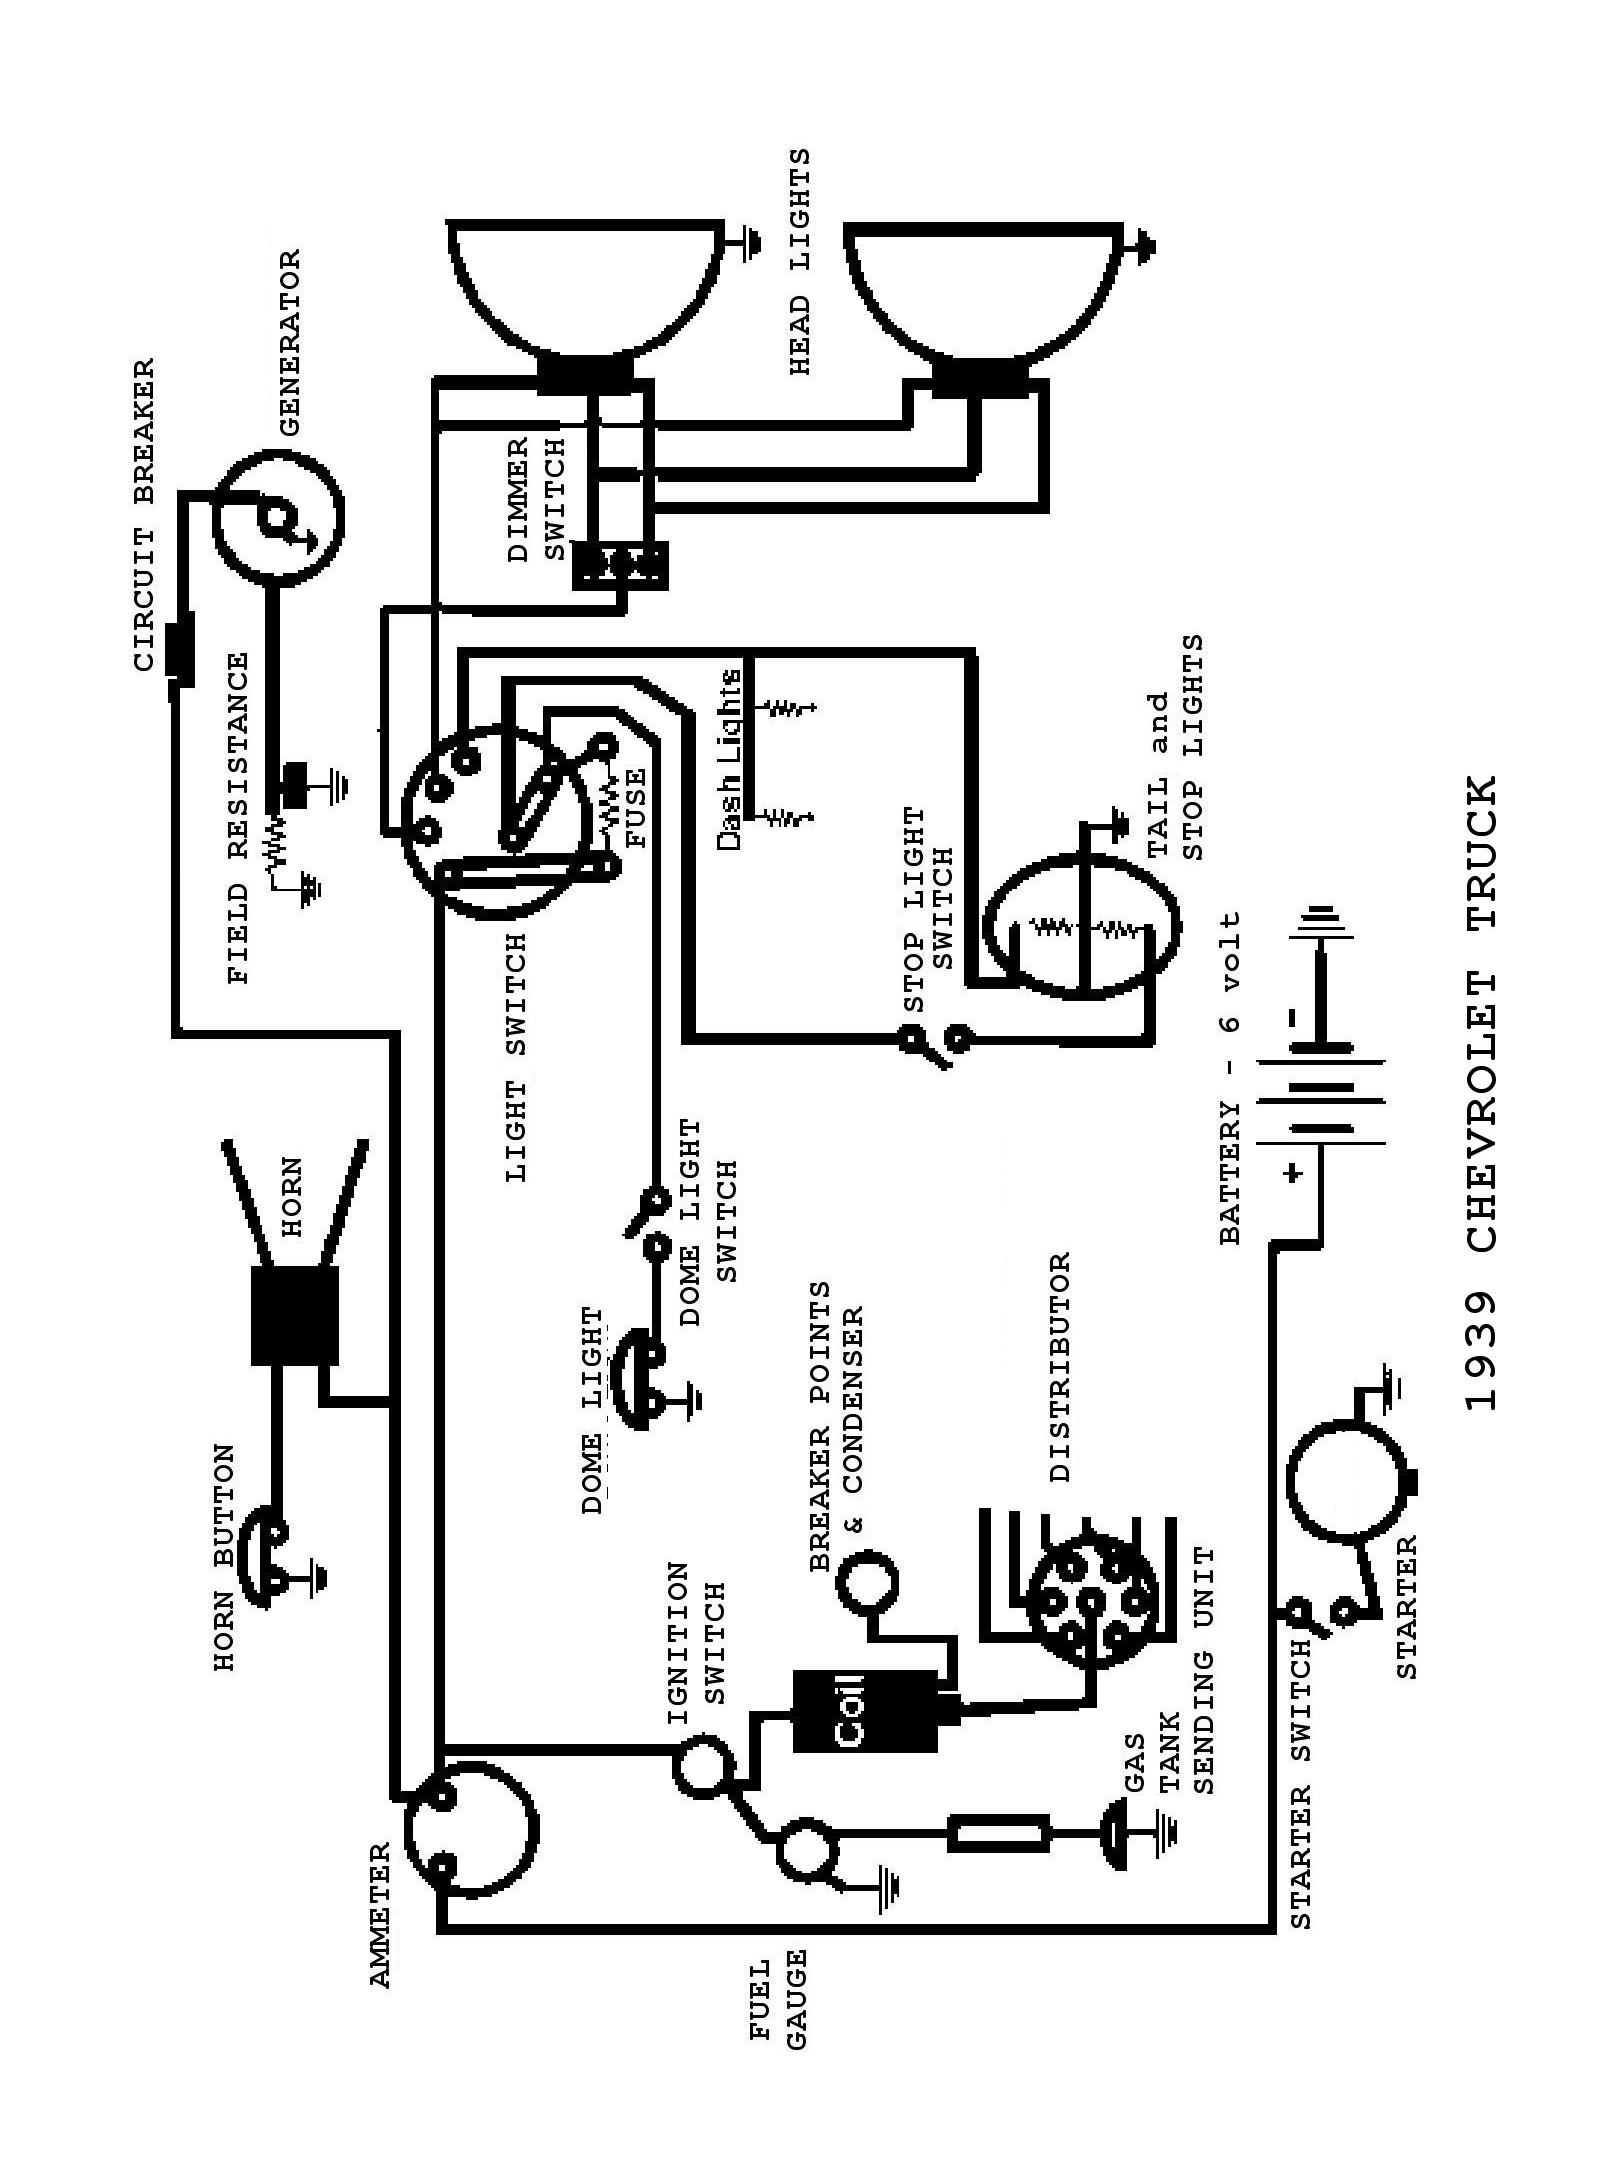 chevy wiring diagrams Wiring Diagram for Recreational Vehicles wiring diagram for pickups  #48 Bass Pickup Wiring Diagrams